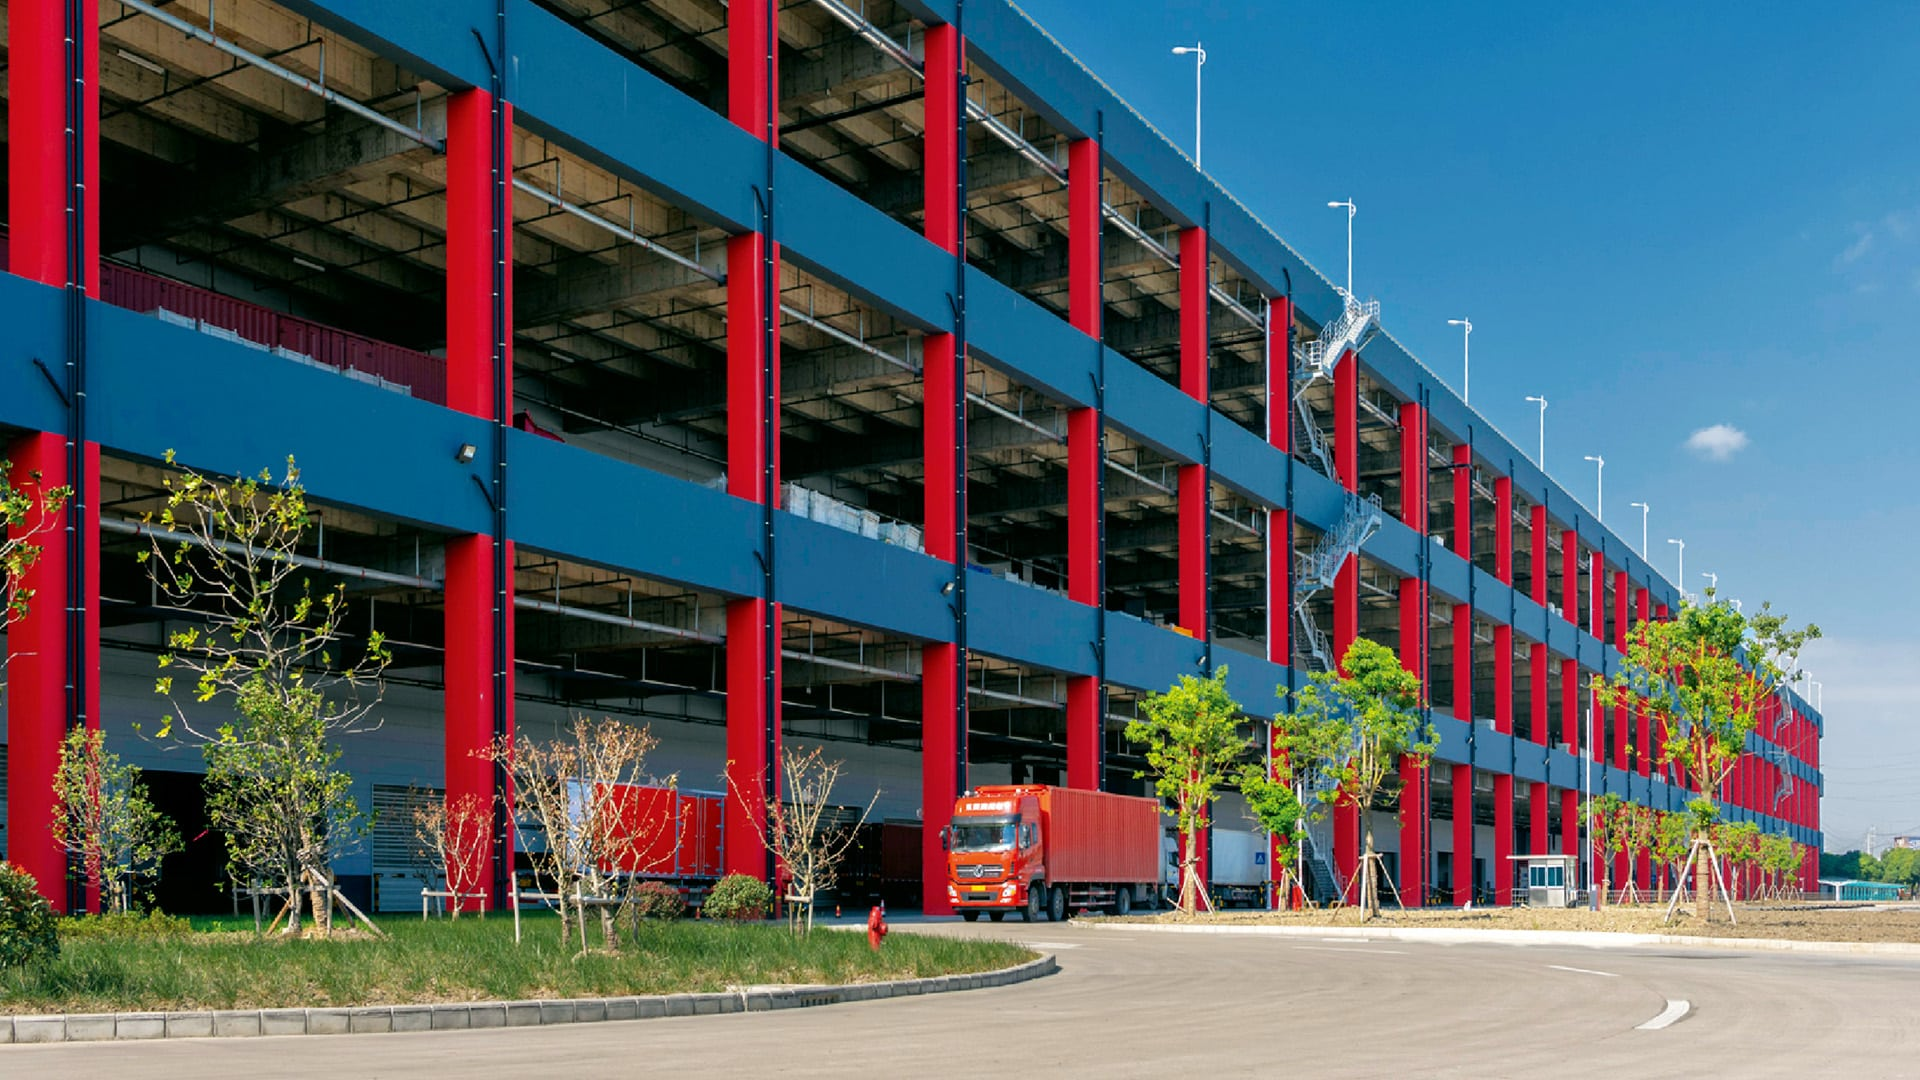 ESR to invest Rs 330 cr to develop 38-acre logistics park at Chakan near Pune